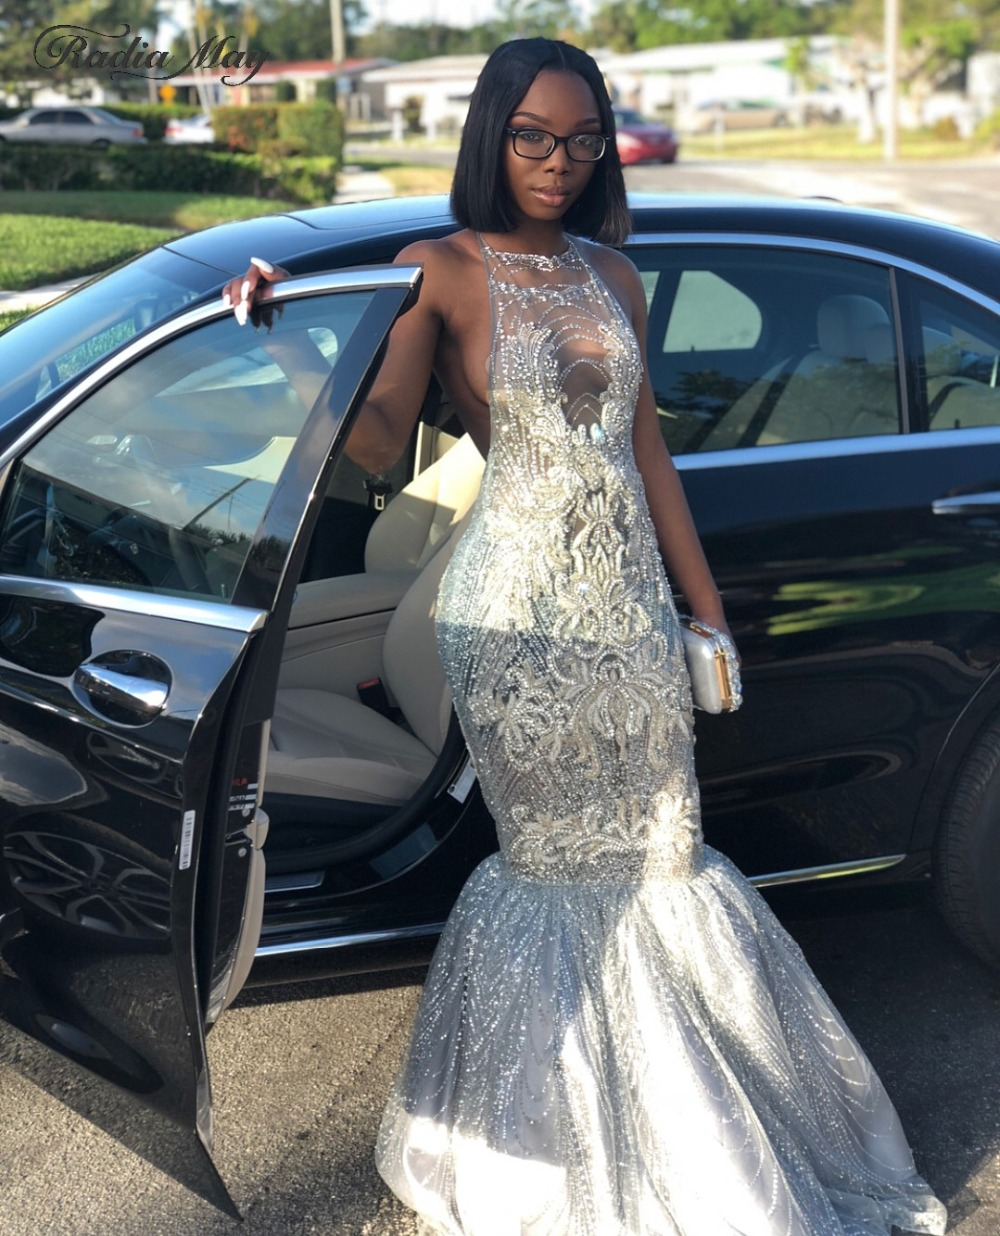 Sexy Halter Backless Glitter Sequin Silver Prom Dresses Mermaid Black Girls Long Graduation Dress Crystal African Formal Gowns Buy At The Price Of 169 60 In Aliexpress Com Imall Com